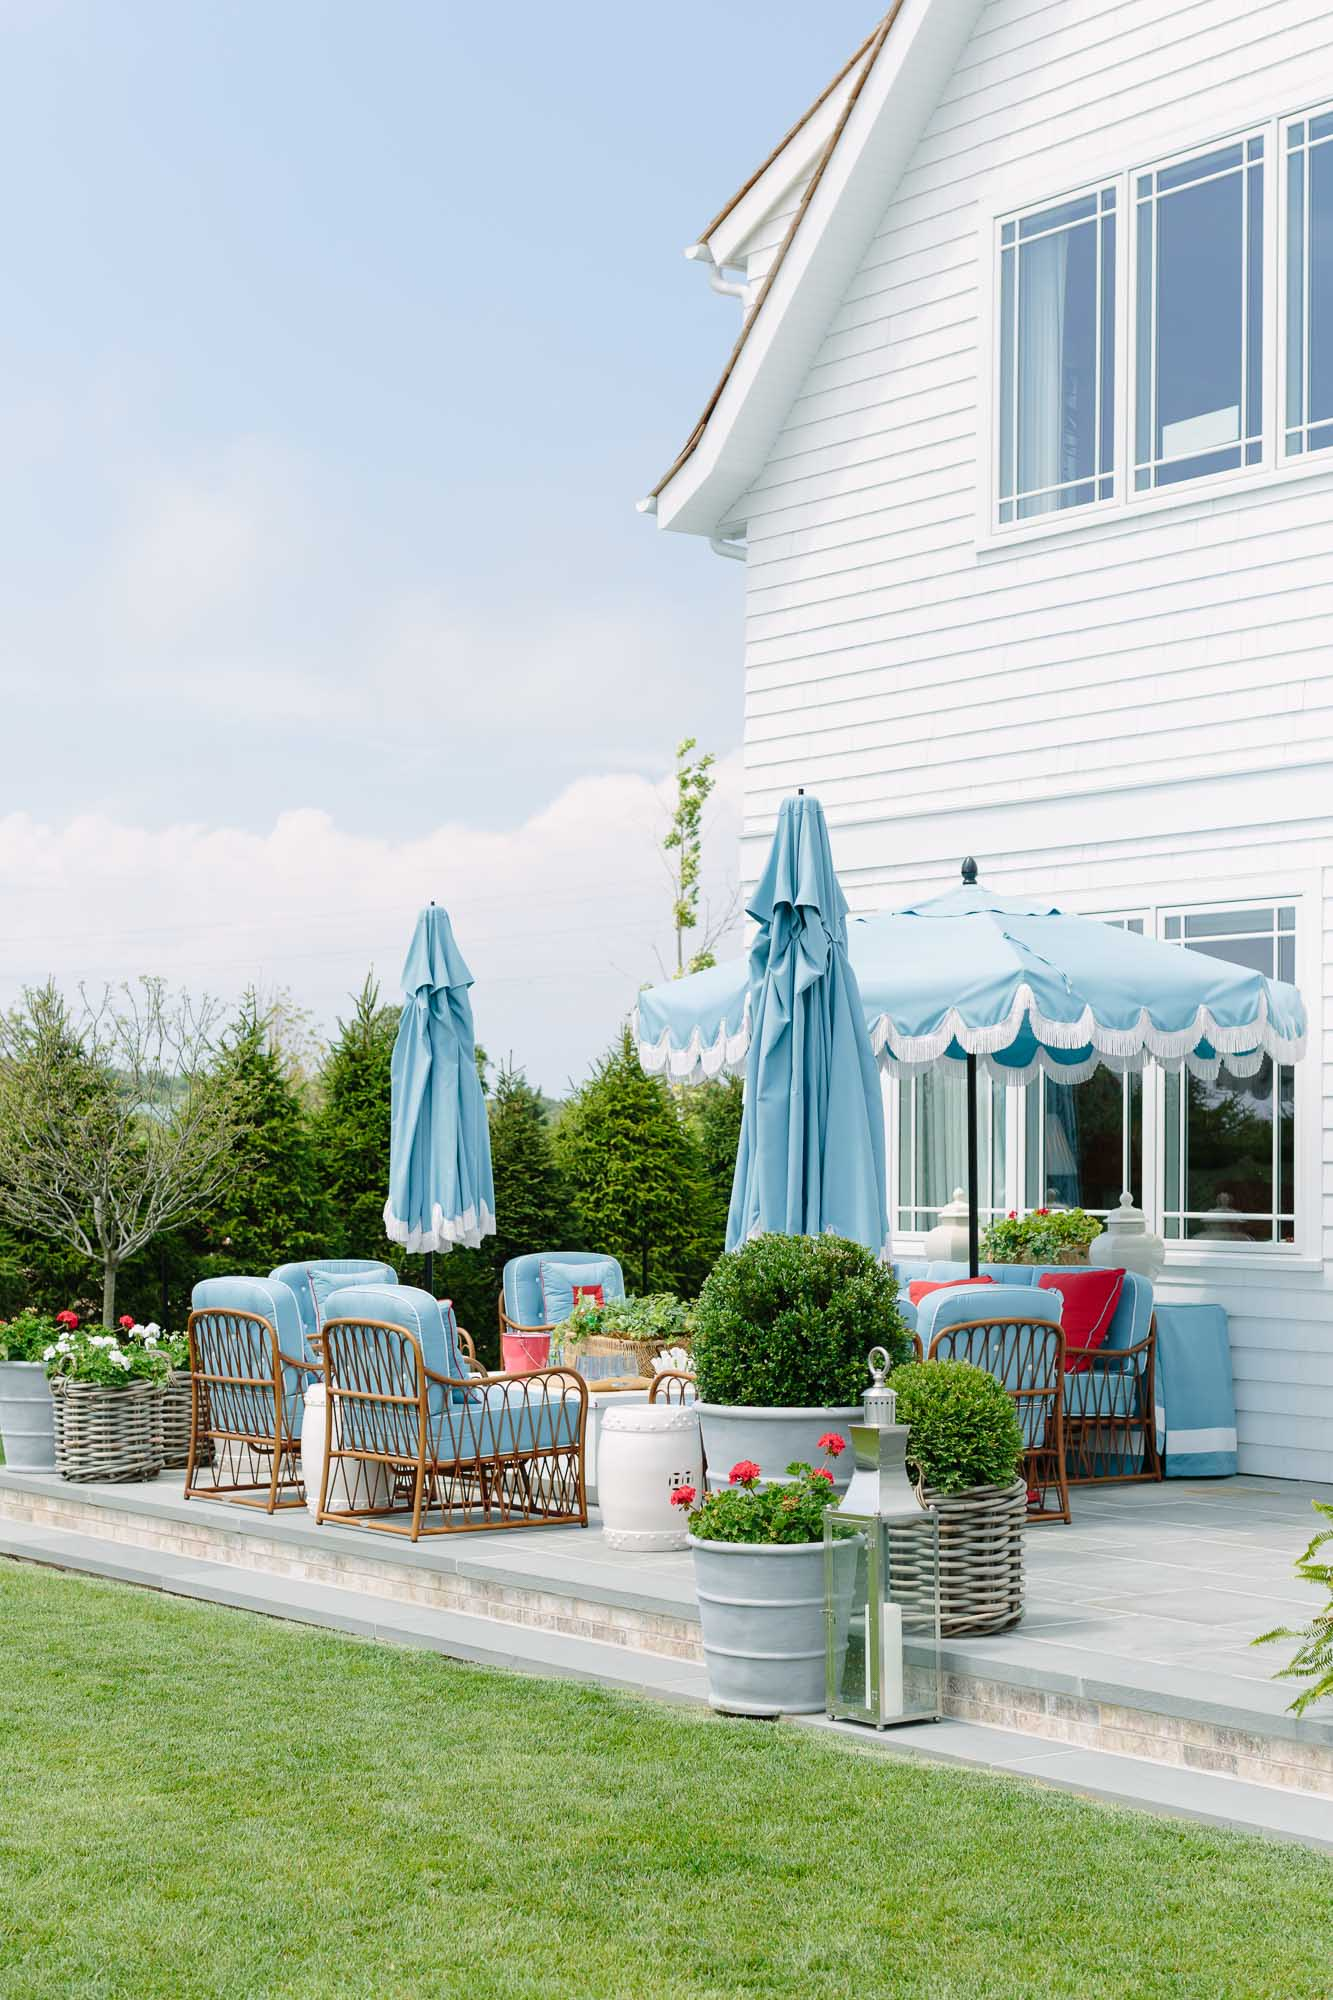 2019 Hampton Designer Showhouse featured by top US style blog, York Avenue: image of Danielle D. Rollins outdoor space at the 2019 Hampton Designer Showhouse with Woodard Furniture